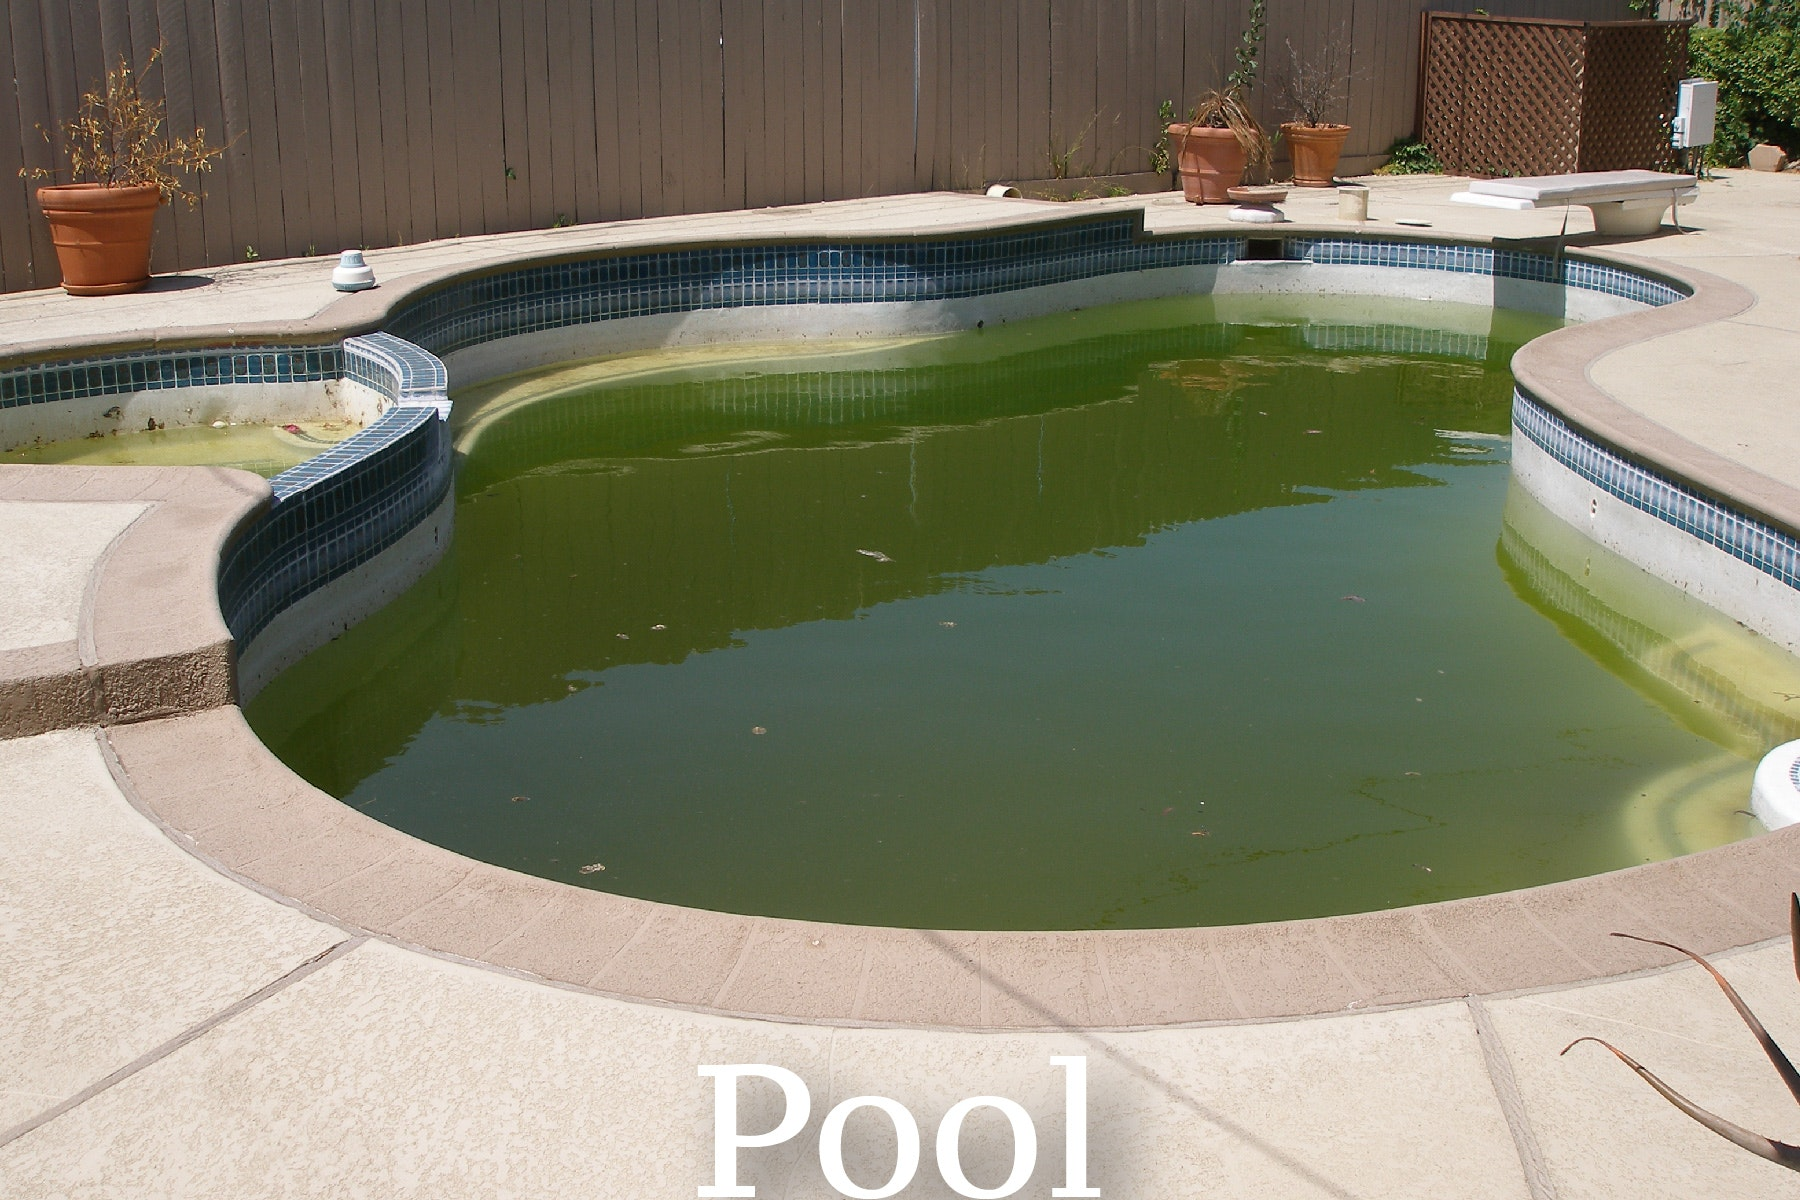 May contain: water, pool, outdoors, yard, nature, hot tub, tub, and jacuzzi